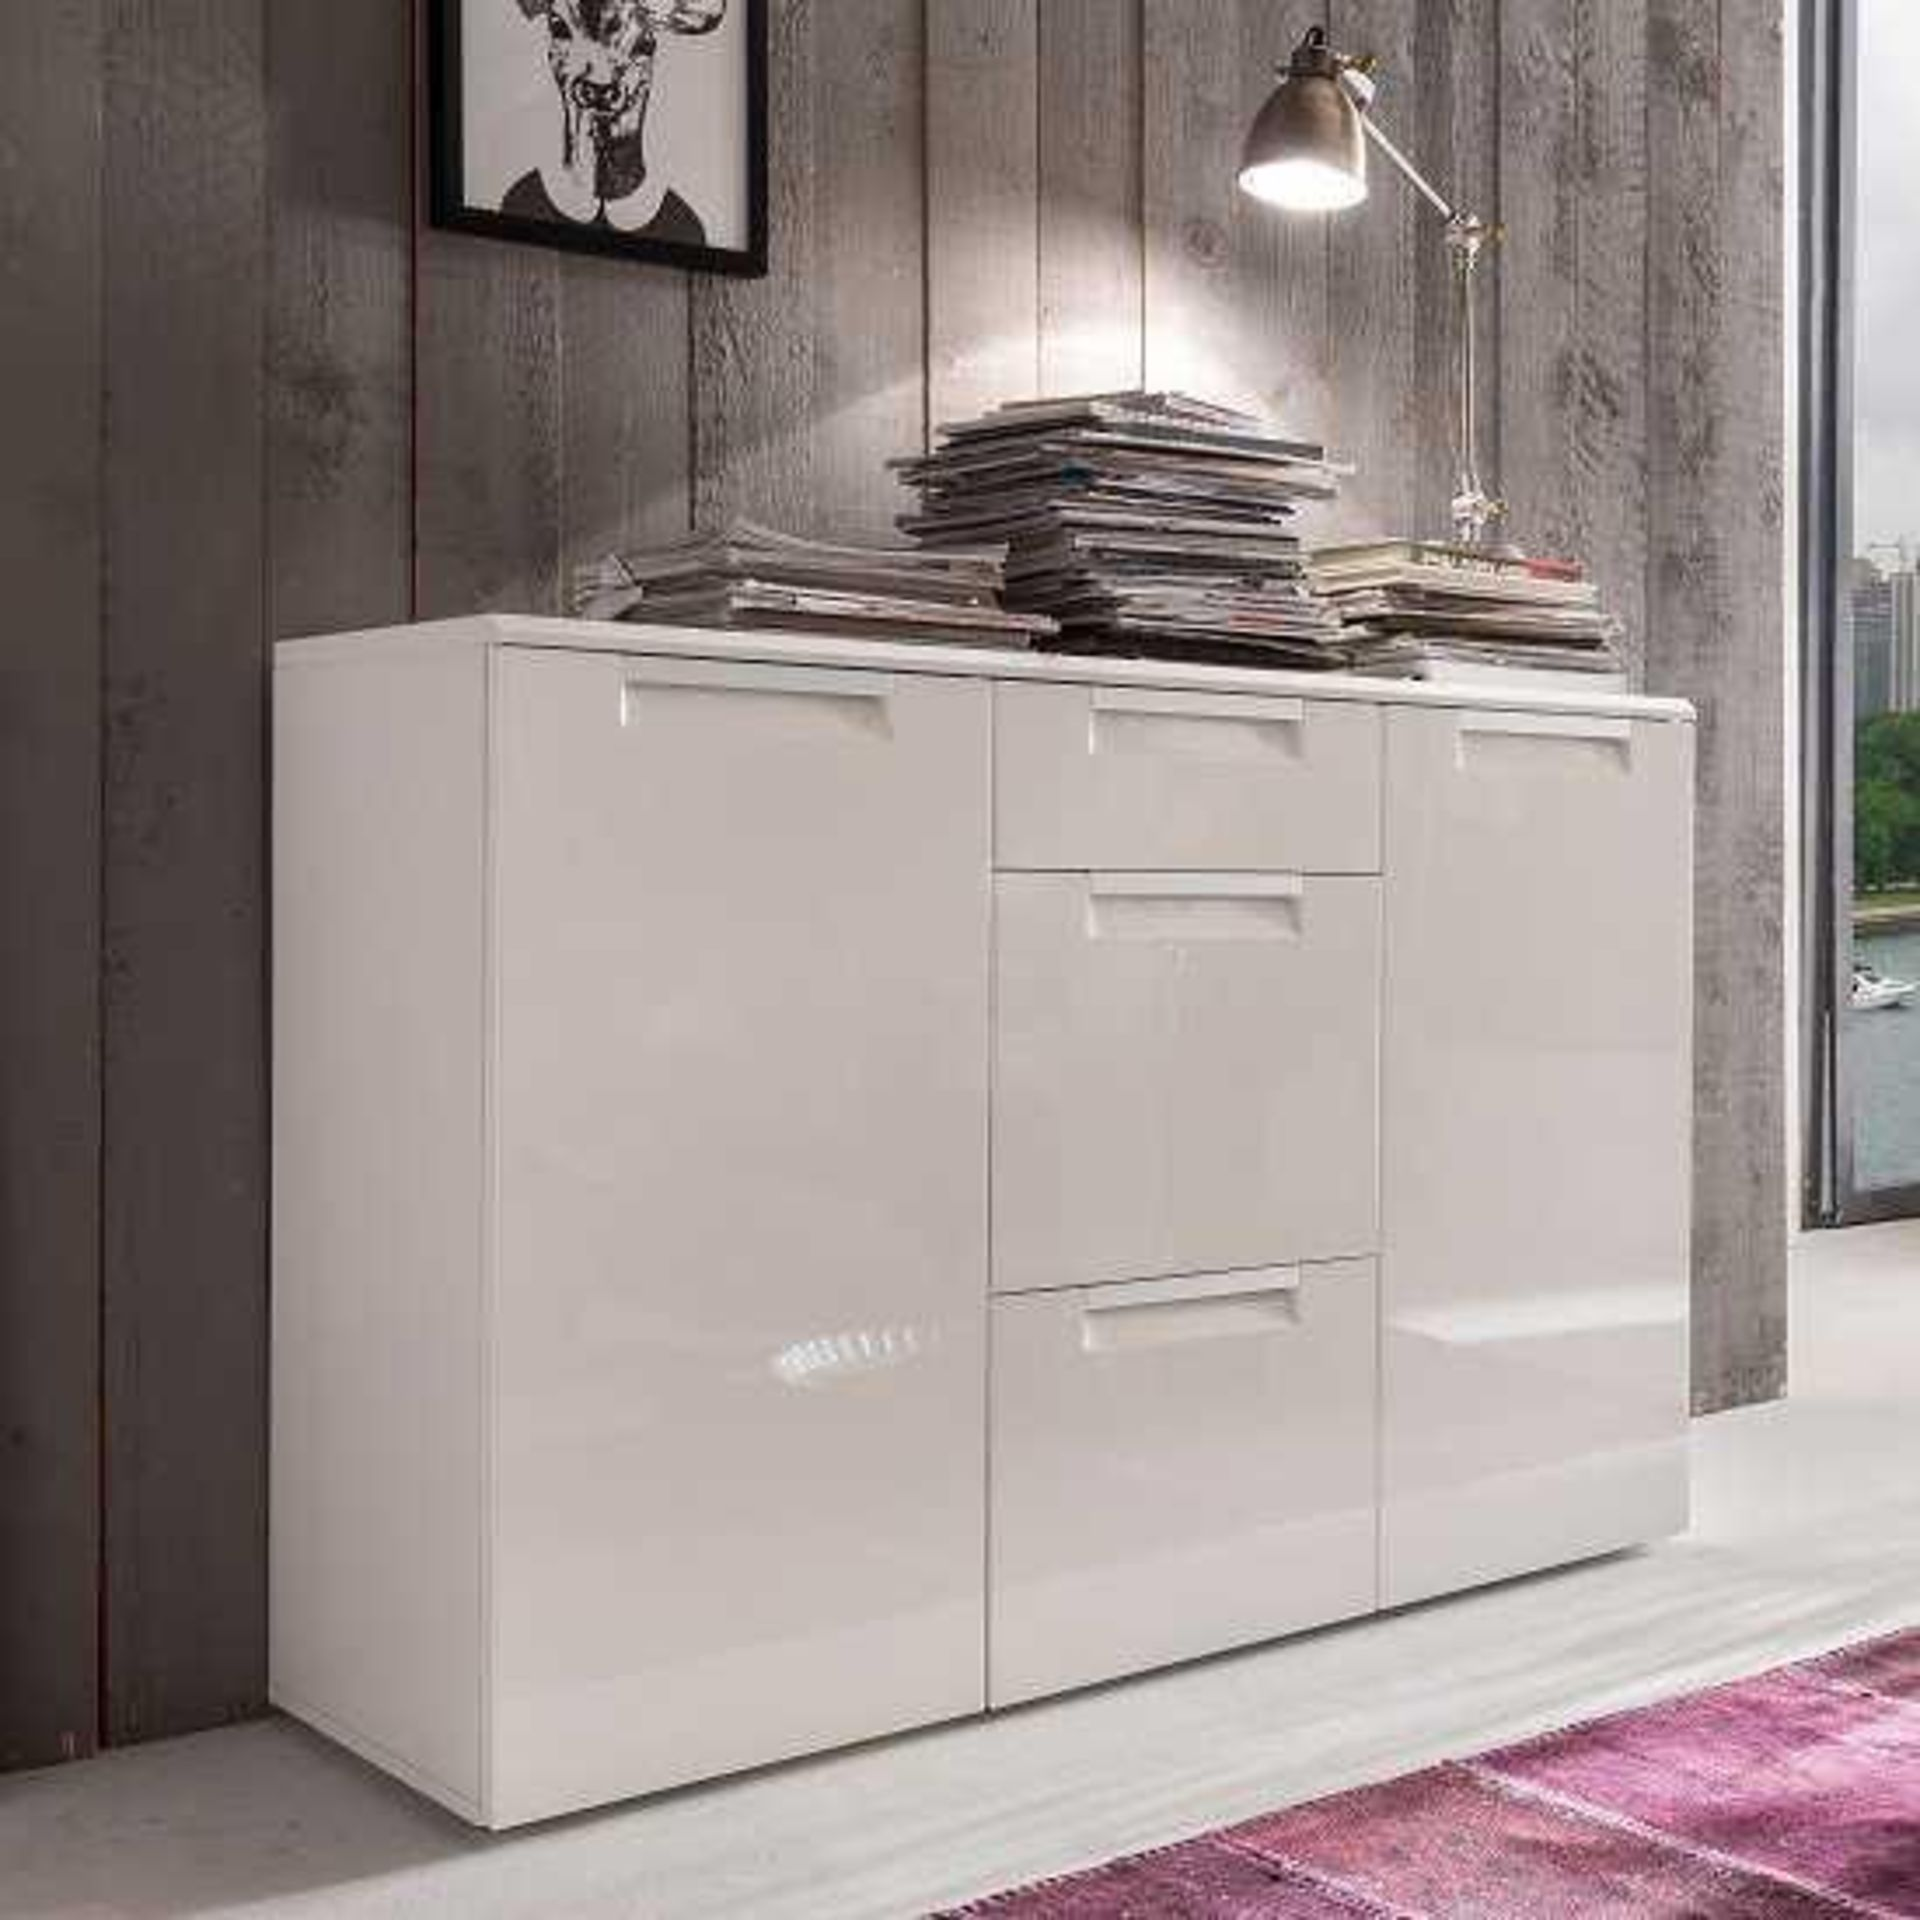 RRP £340 - New Boxed 'Alu-Line' 2 Door 3 Drawer Sideboard In White High Gloss